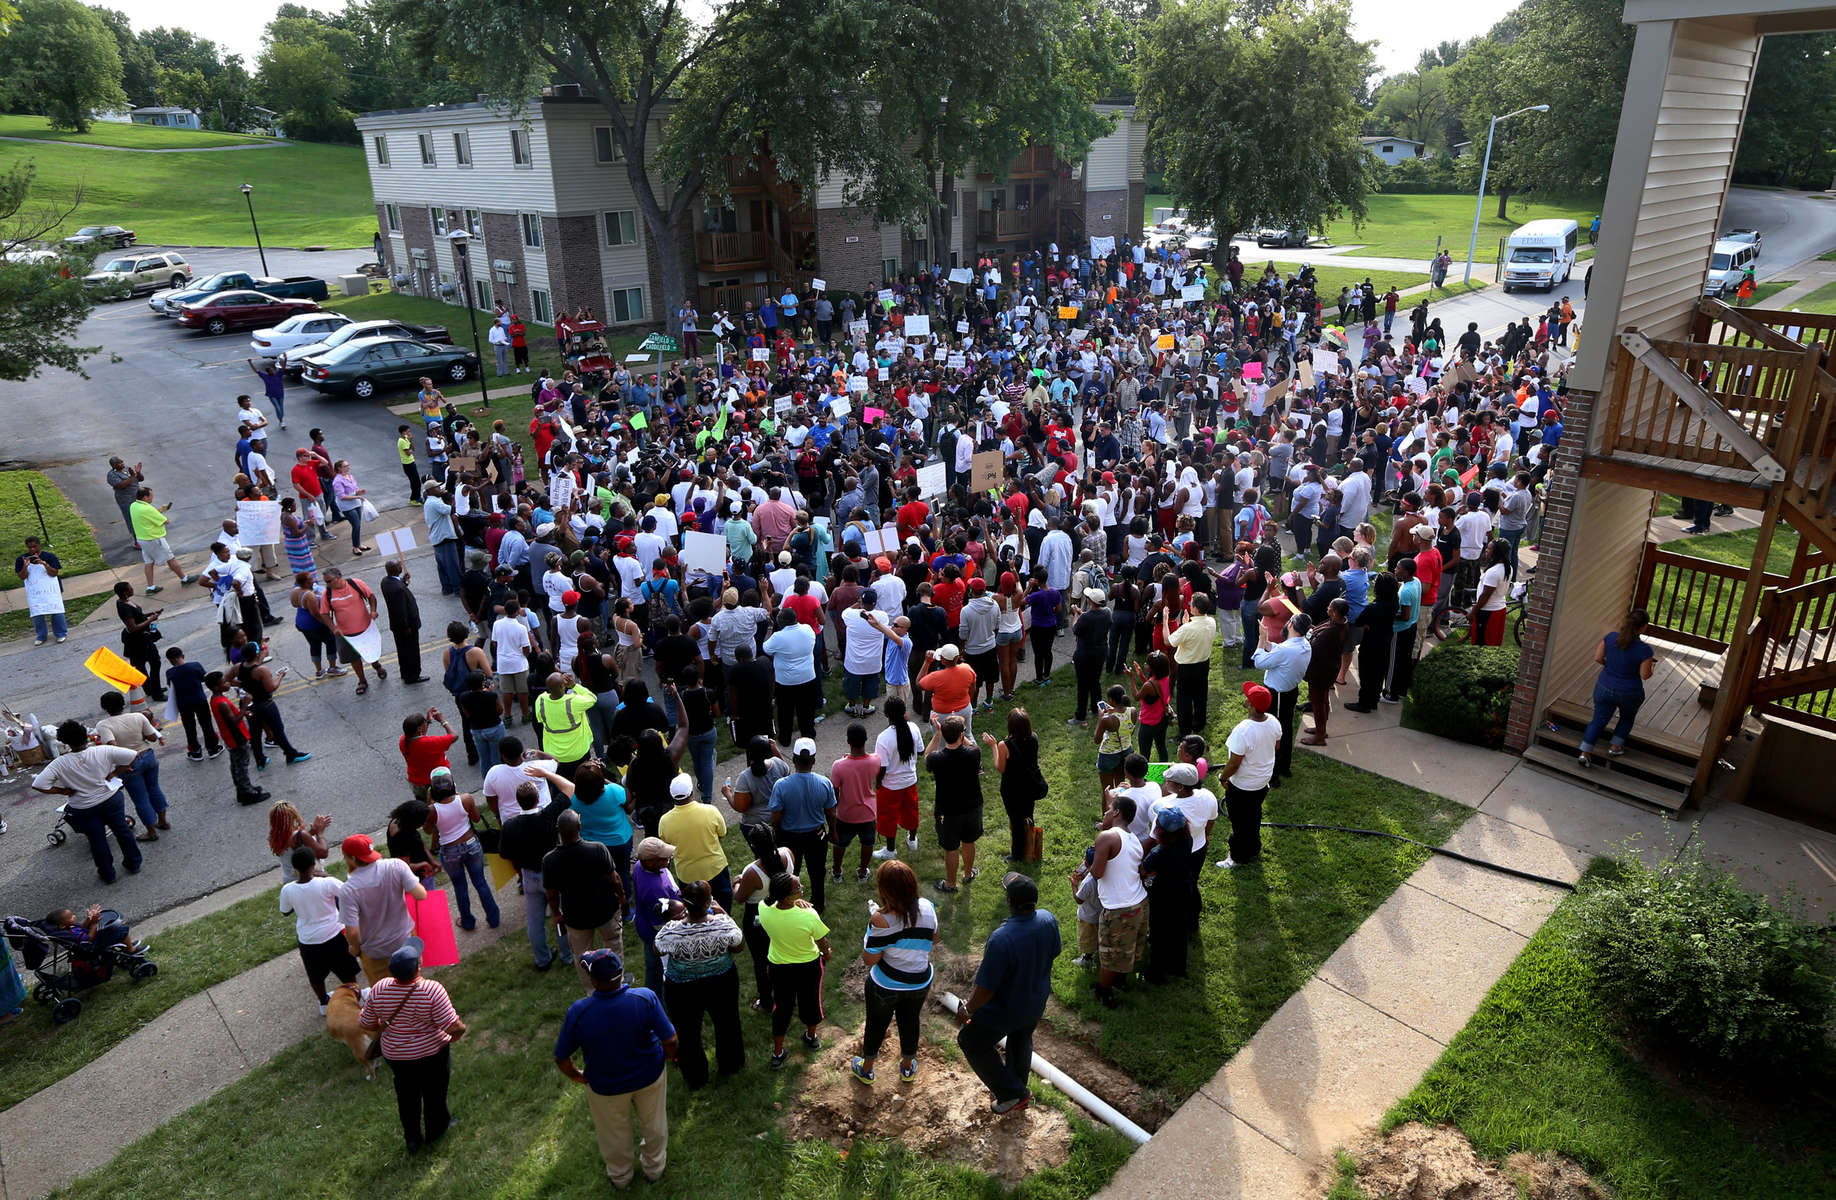 A crowd of protesters gather near the spot where Mike Brown was shot and killed by a police officer on Canfield Drive after they marched from Chamber Road on Thursday, Aug. 14, 2014.